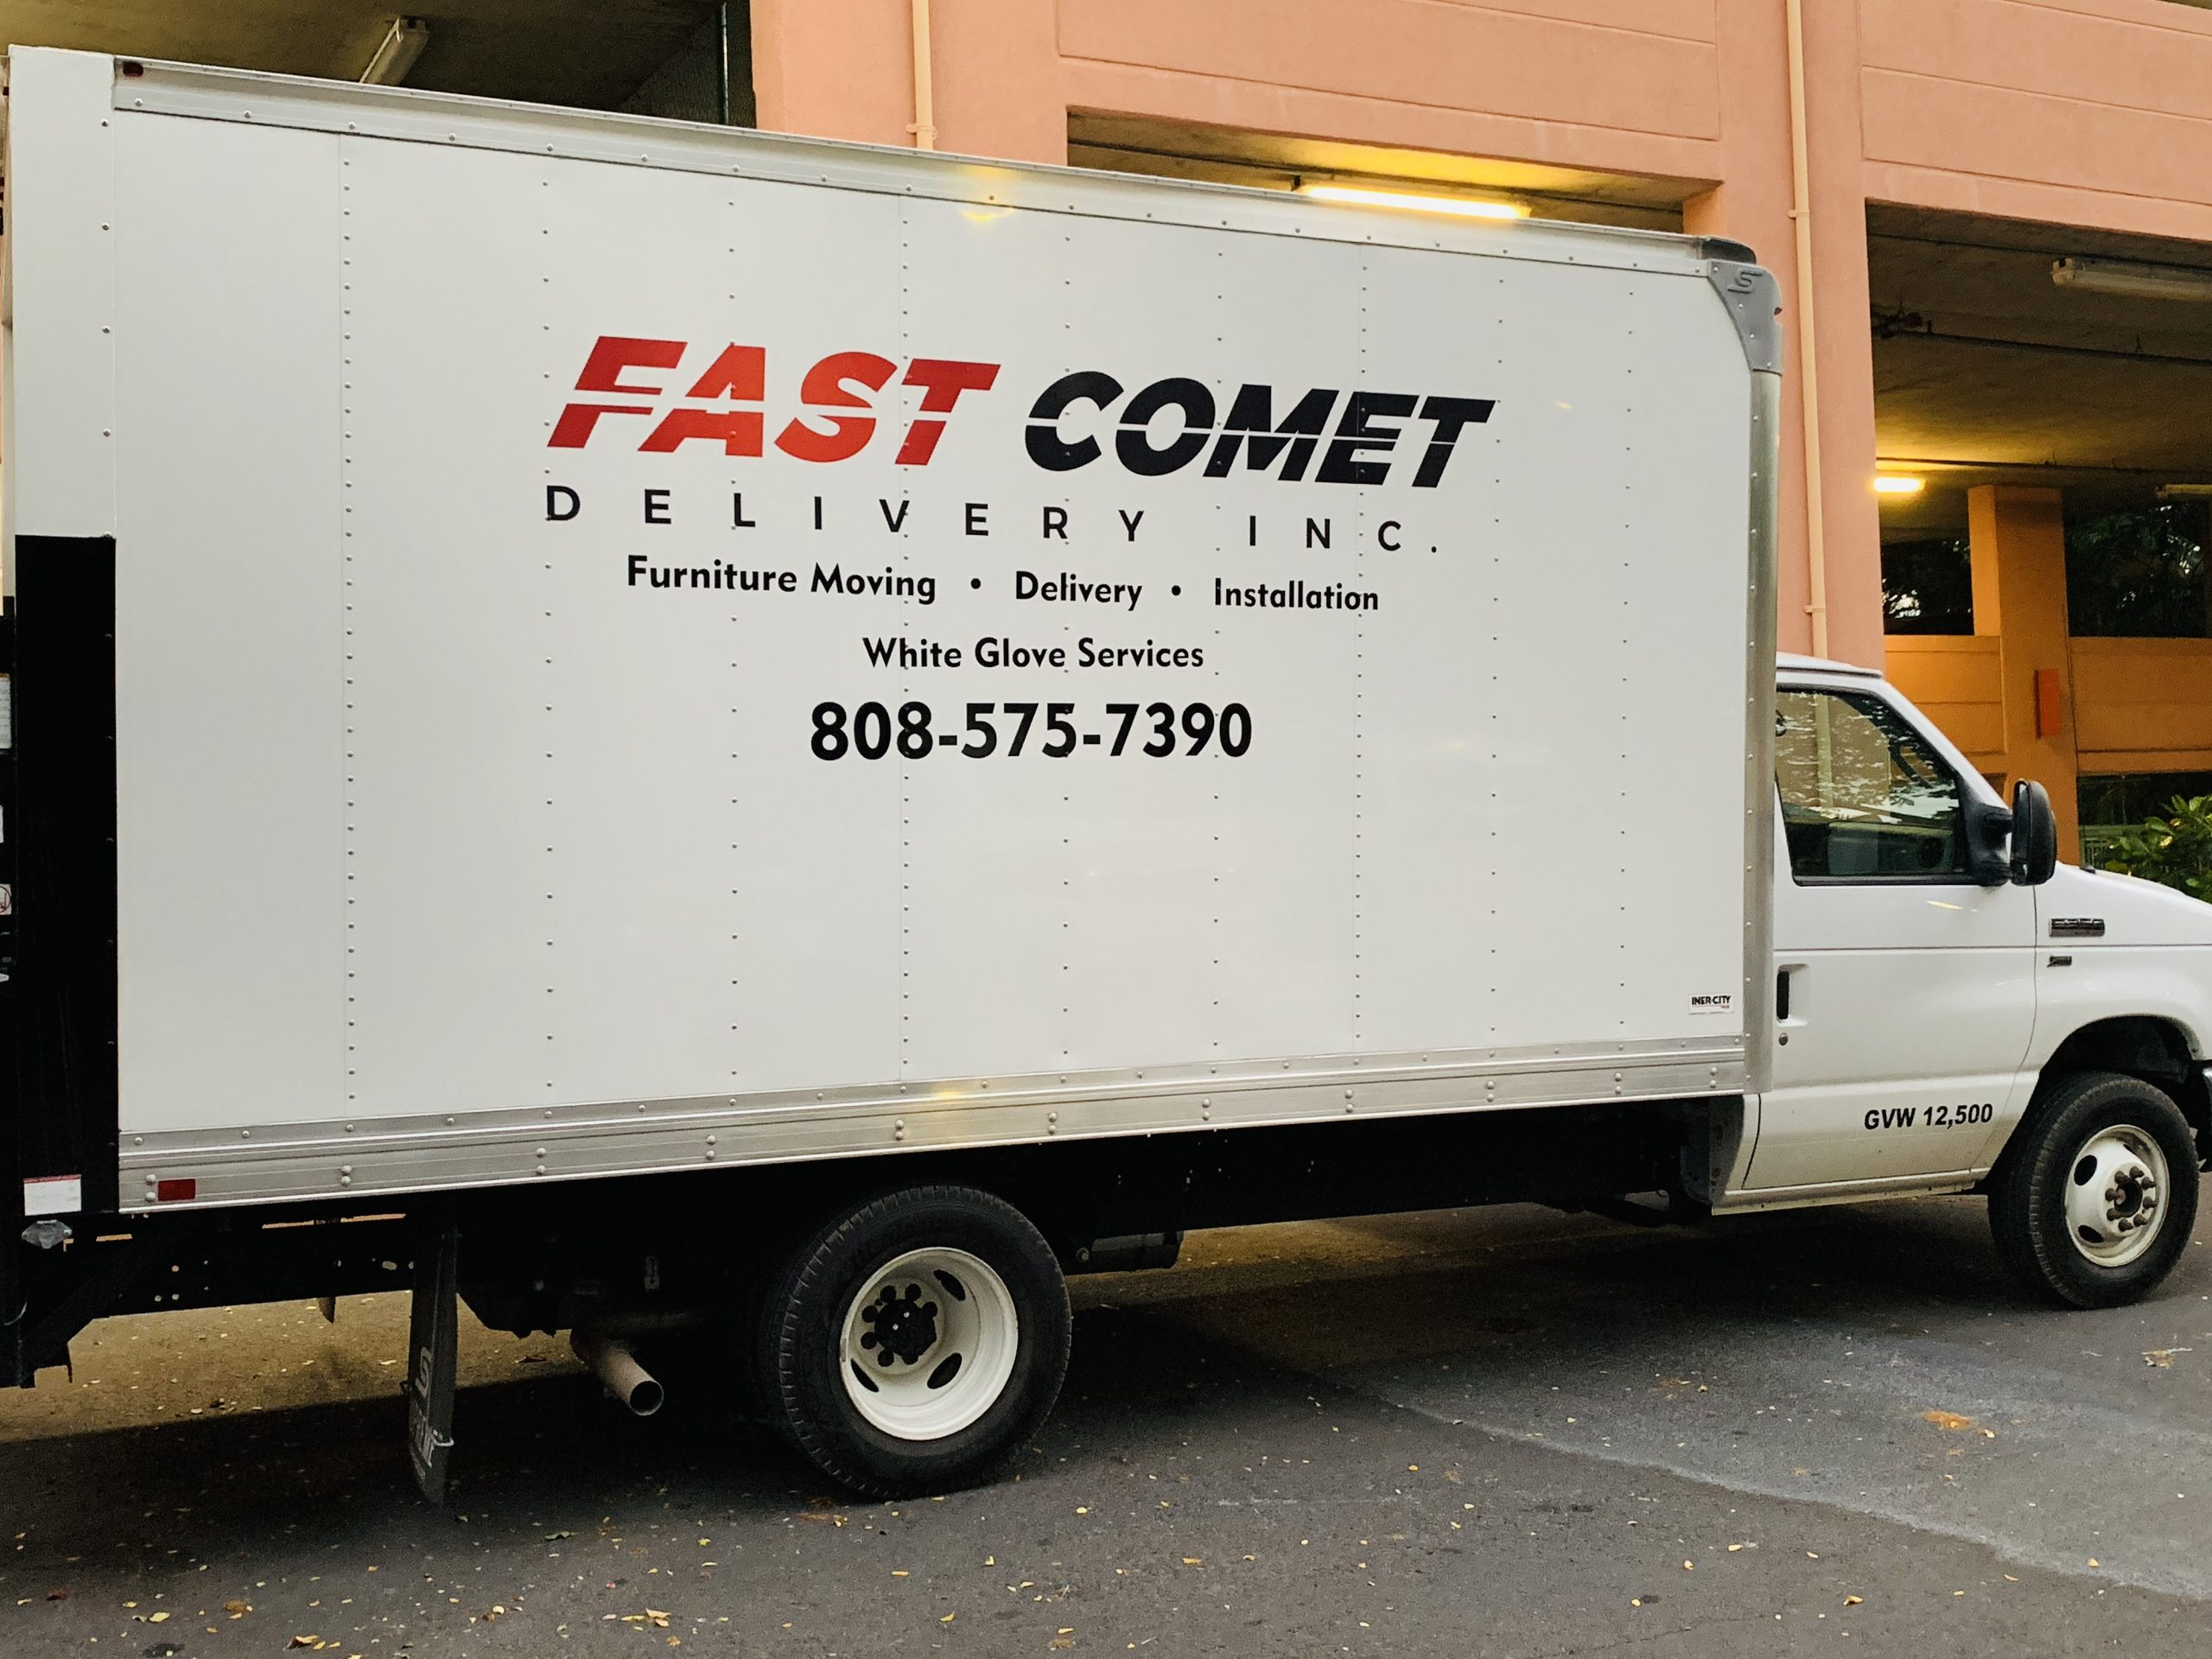 Fast Comet Delivery Truck 5 - Maui Hawaii